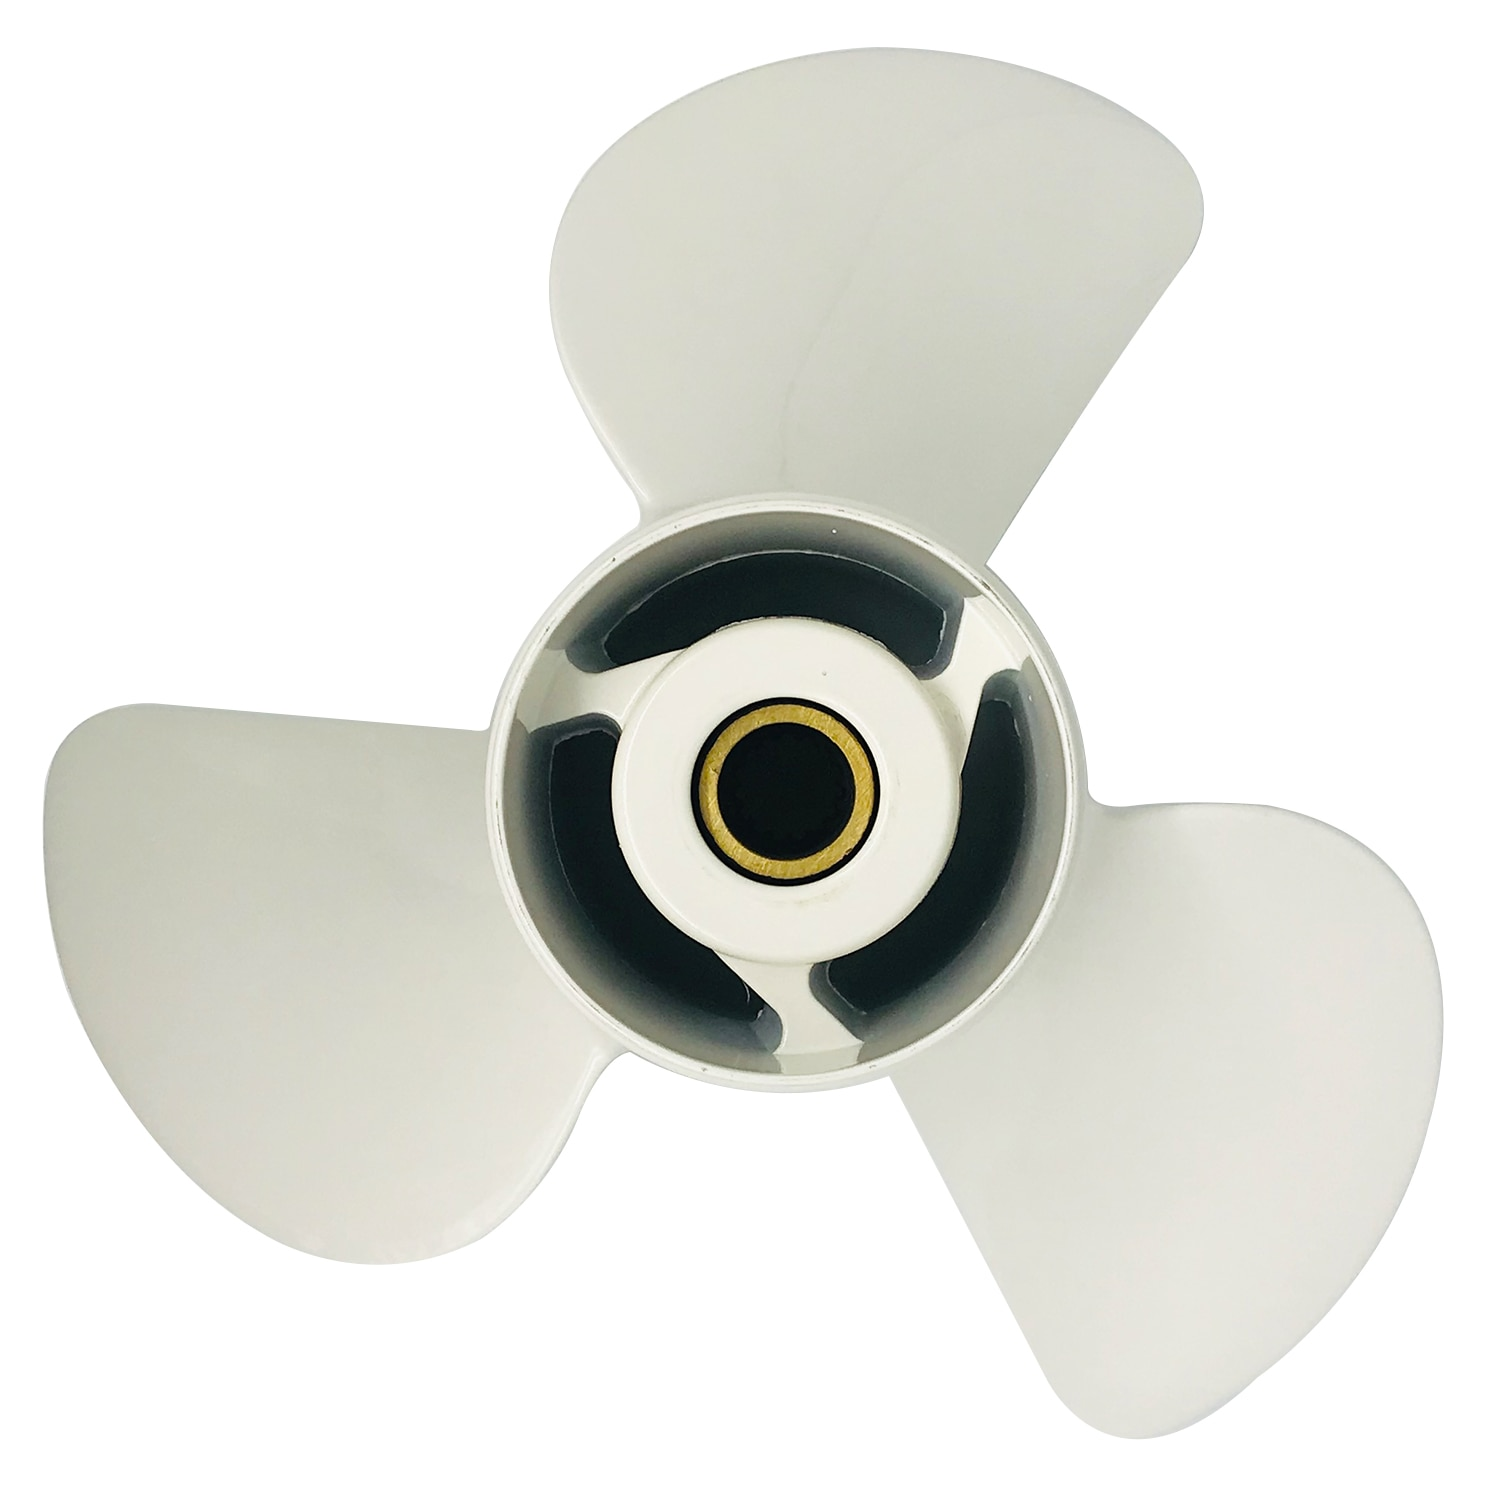 Boat Propeller 14 1/2x19 for Yamaha 150HP-400HP 3 Blades Aluminum Prop 15 Tooth RH 14.5x19 enlarge